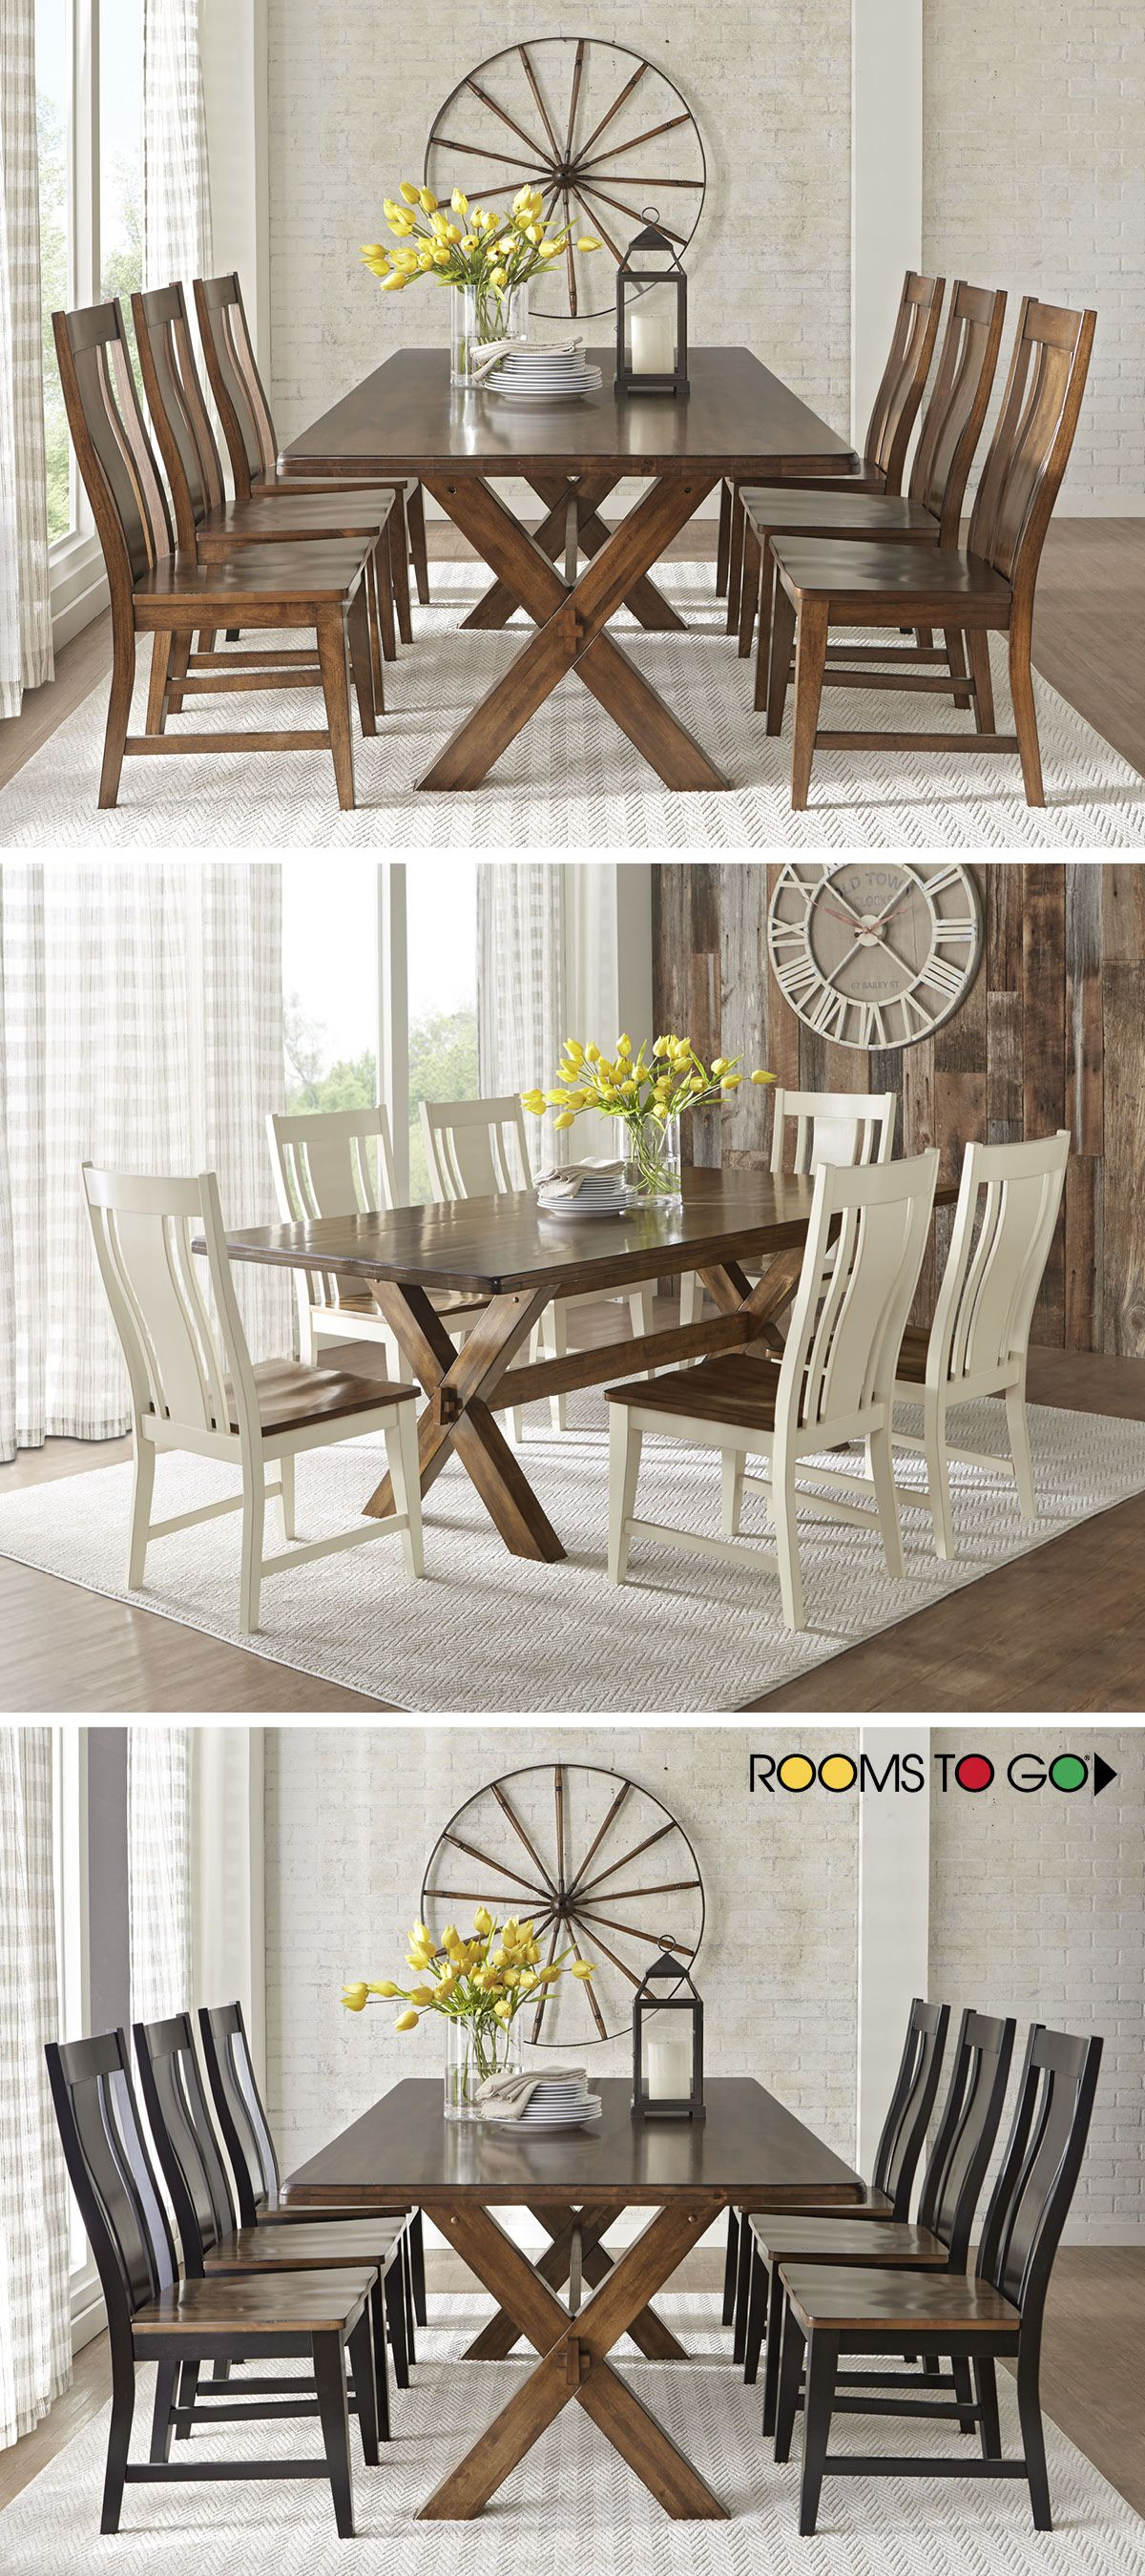 Rectangle Dining Room Find Affordable Sets For Your Home That Will Complement The Rest Of Furniture